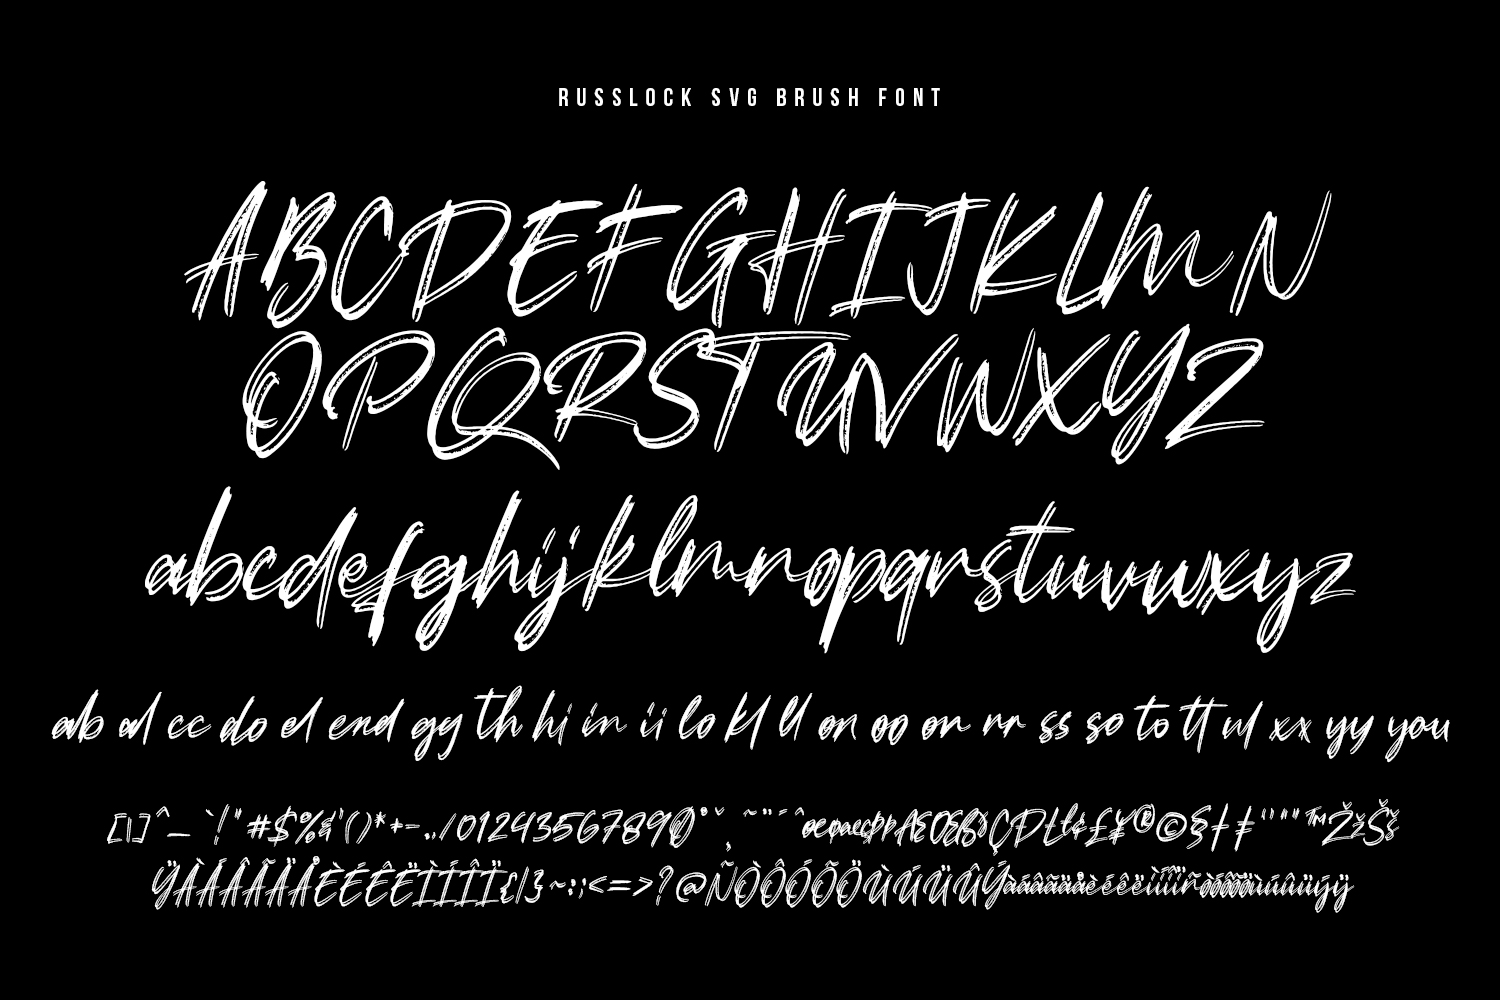 Russlock SVG Brush Font example image 12